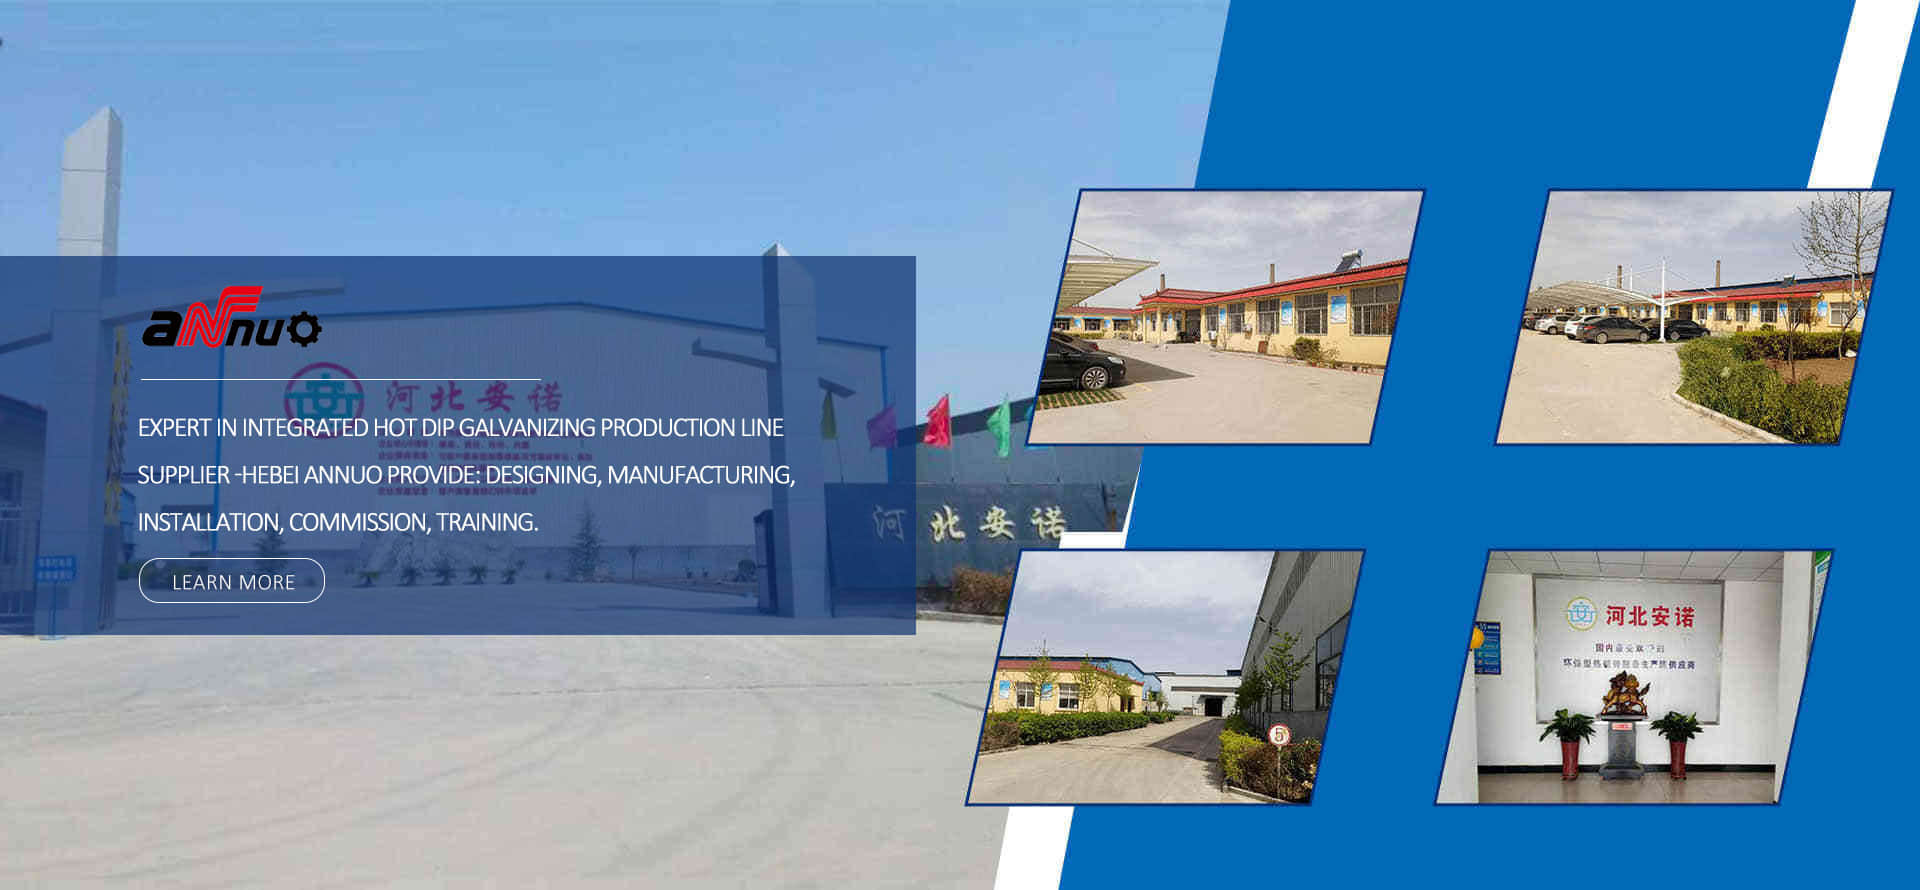 Expert in integrated Hot dip galvanizing production line supplier -Hebei Annuo Provide: Designing, Manufacturing, installation, Commission, Training.